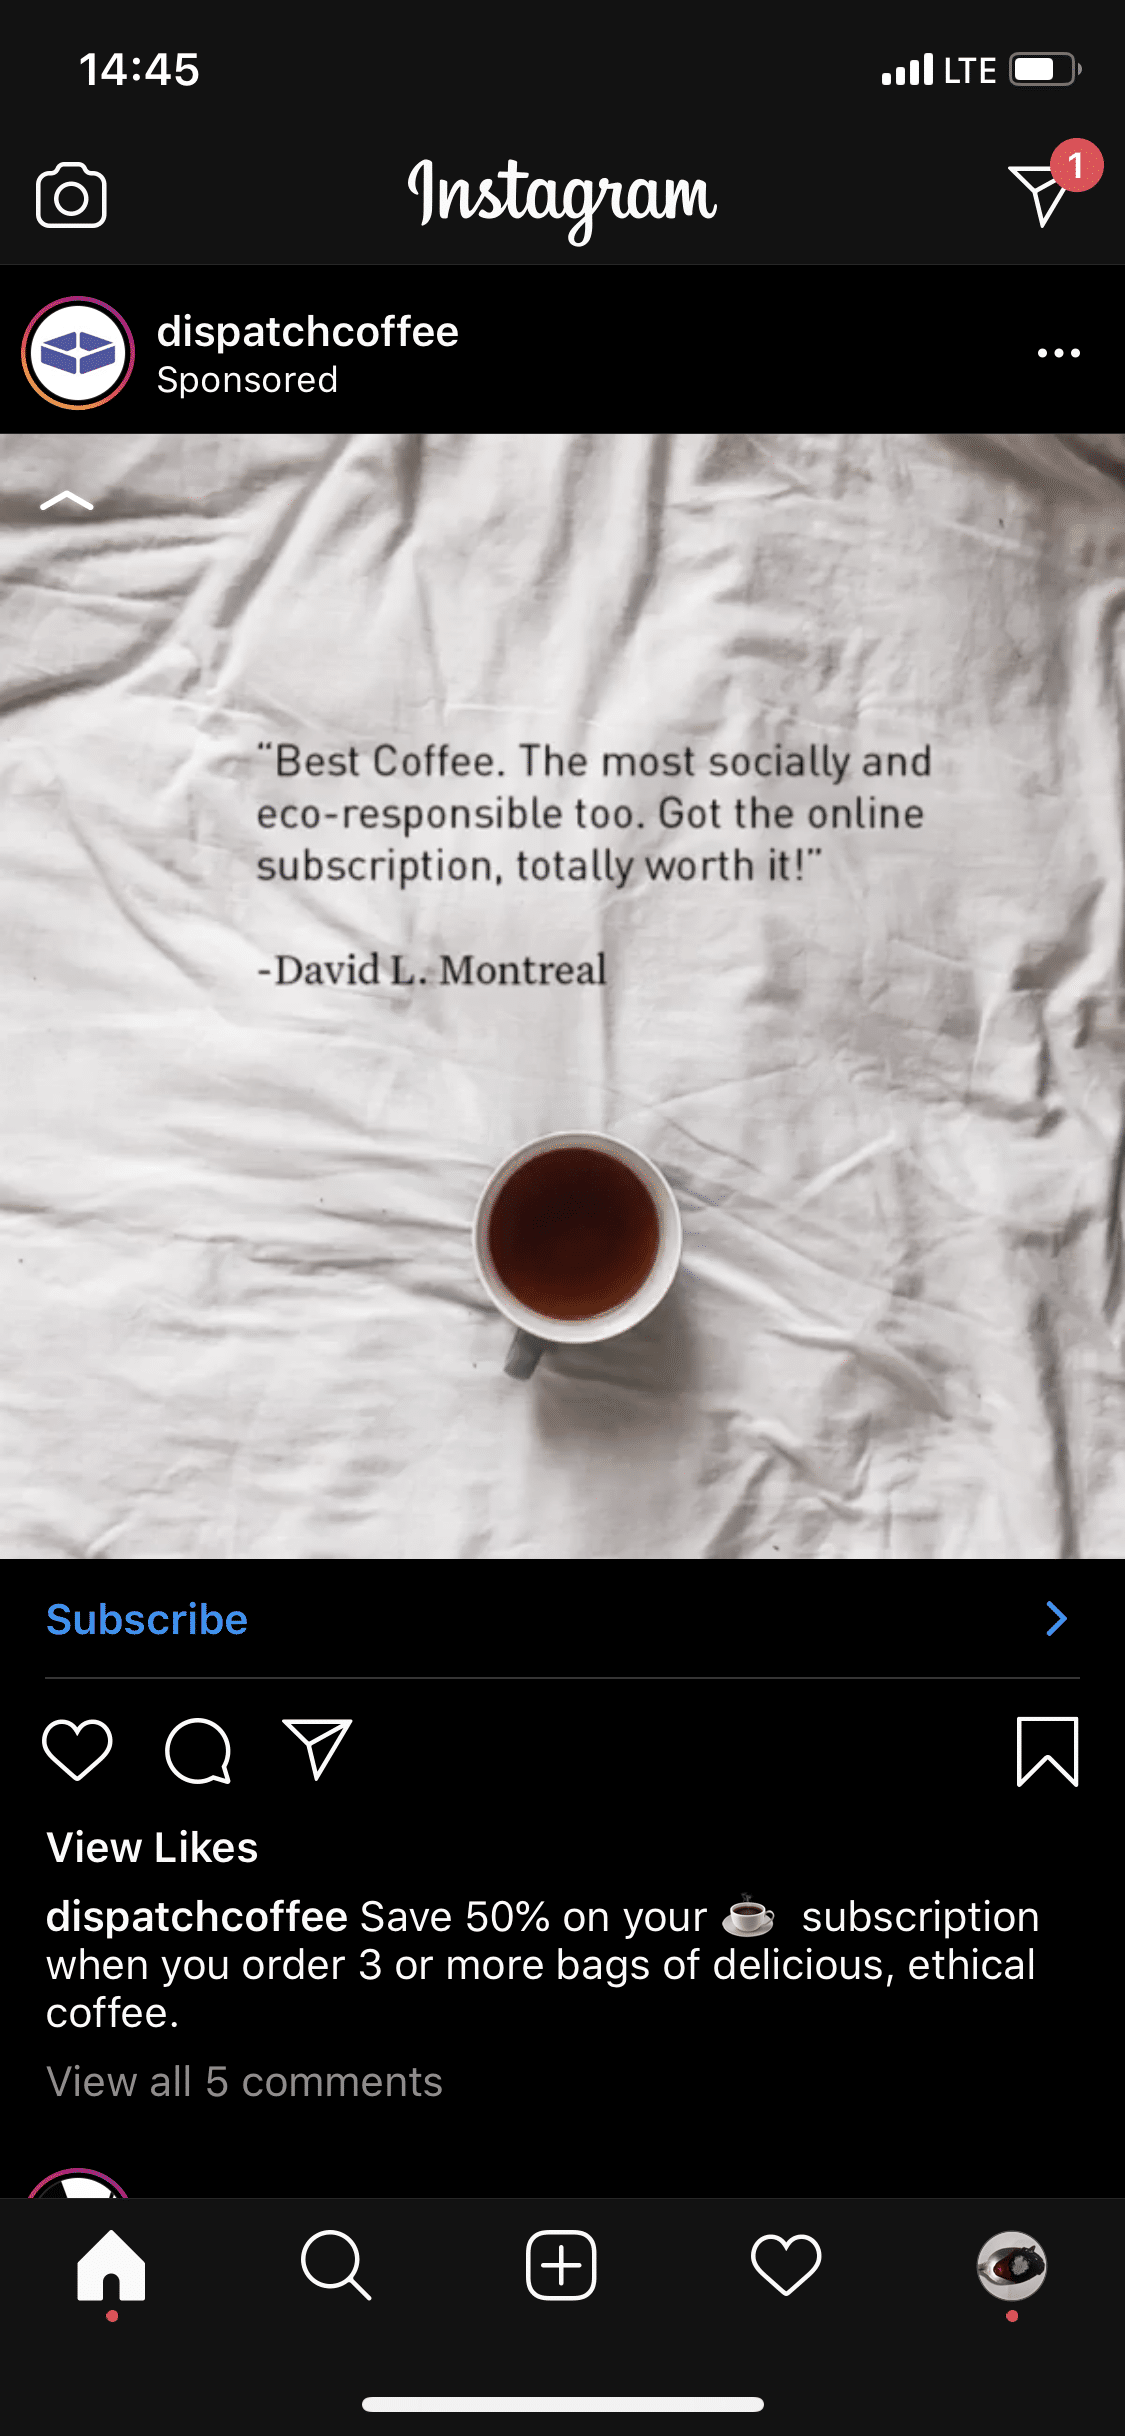 Dispatch Coffee Instagram paid ad